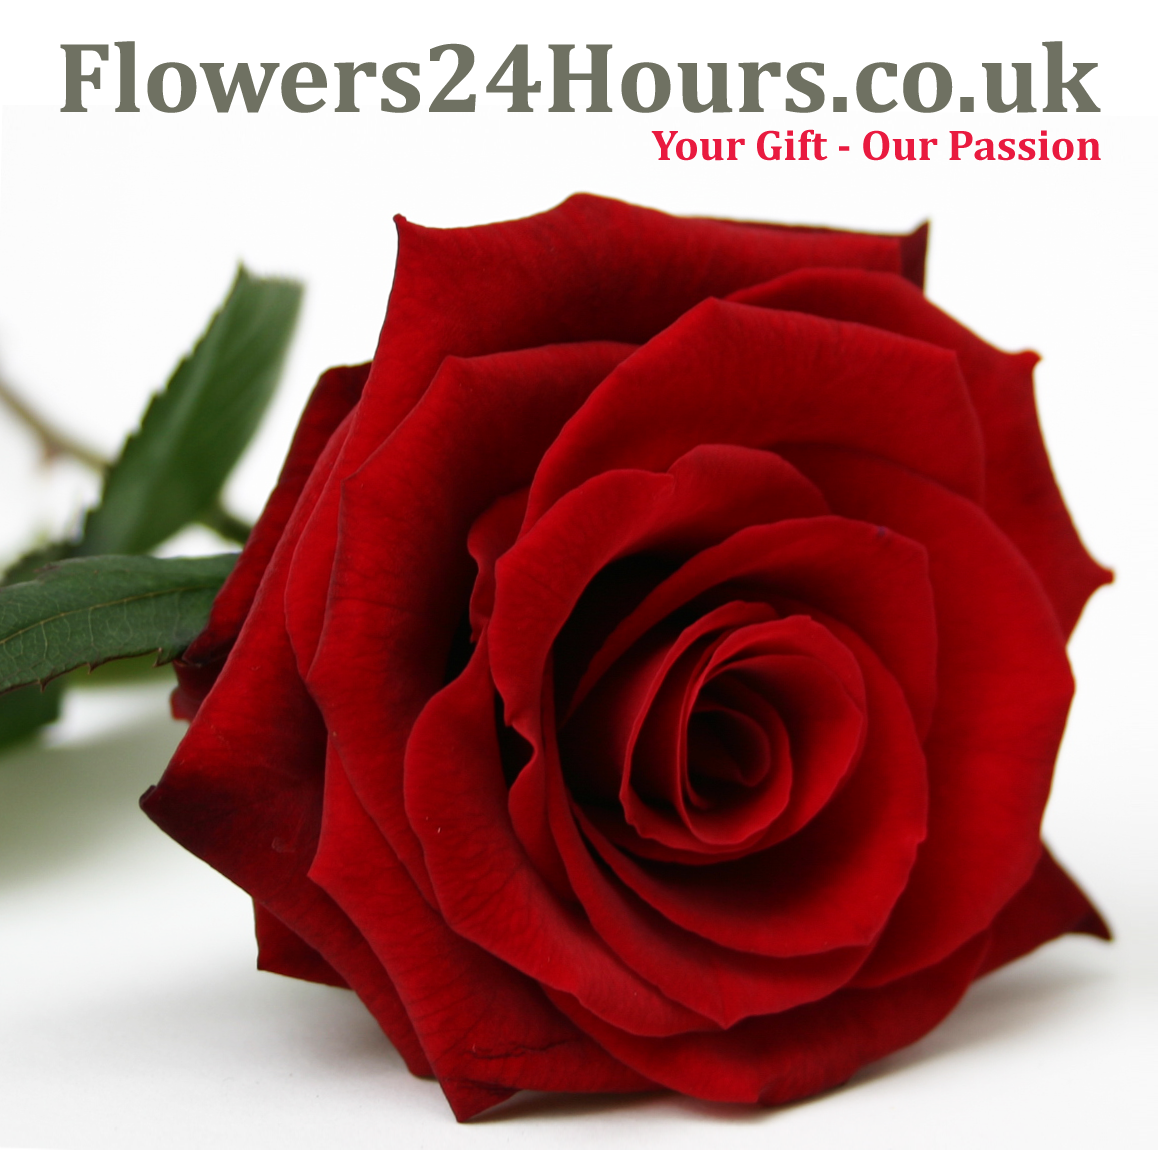 Flowers24hours s new range of beautifully scented flowers available for c